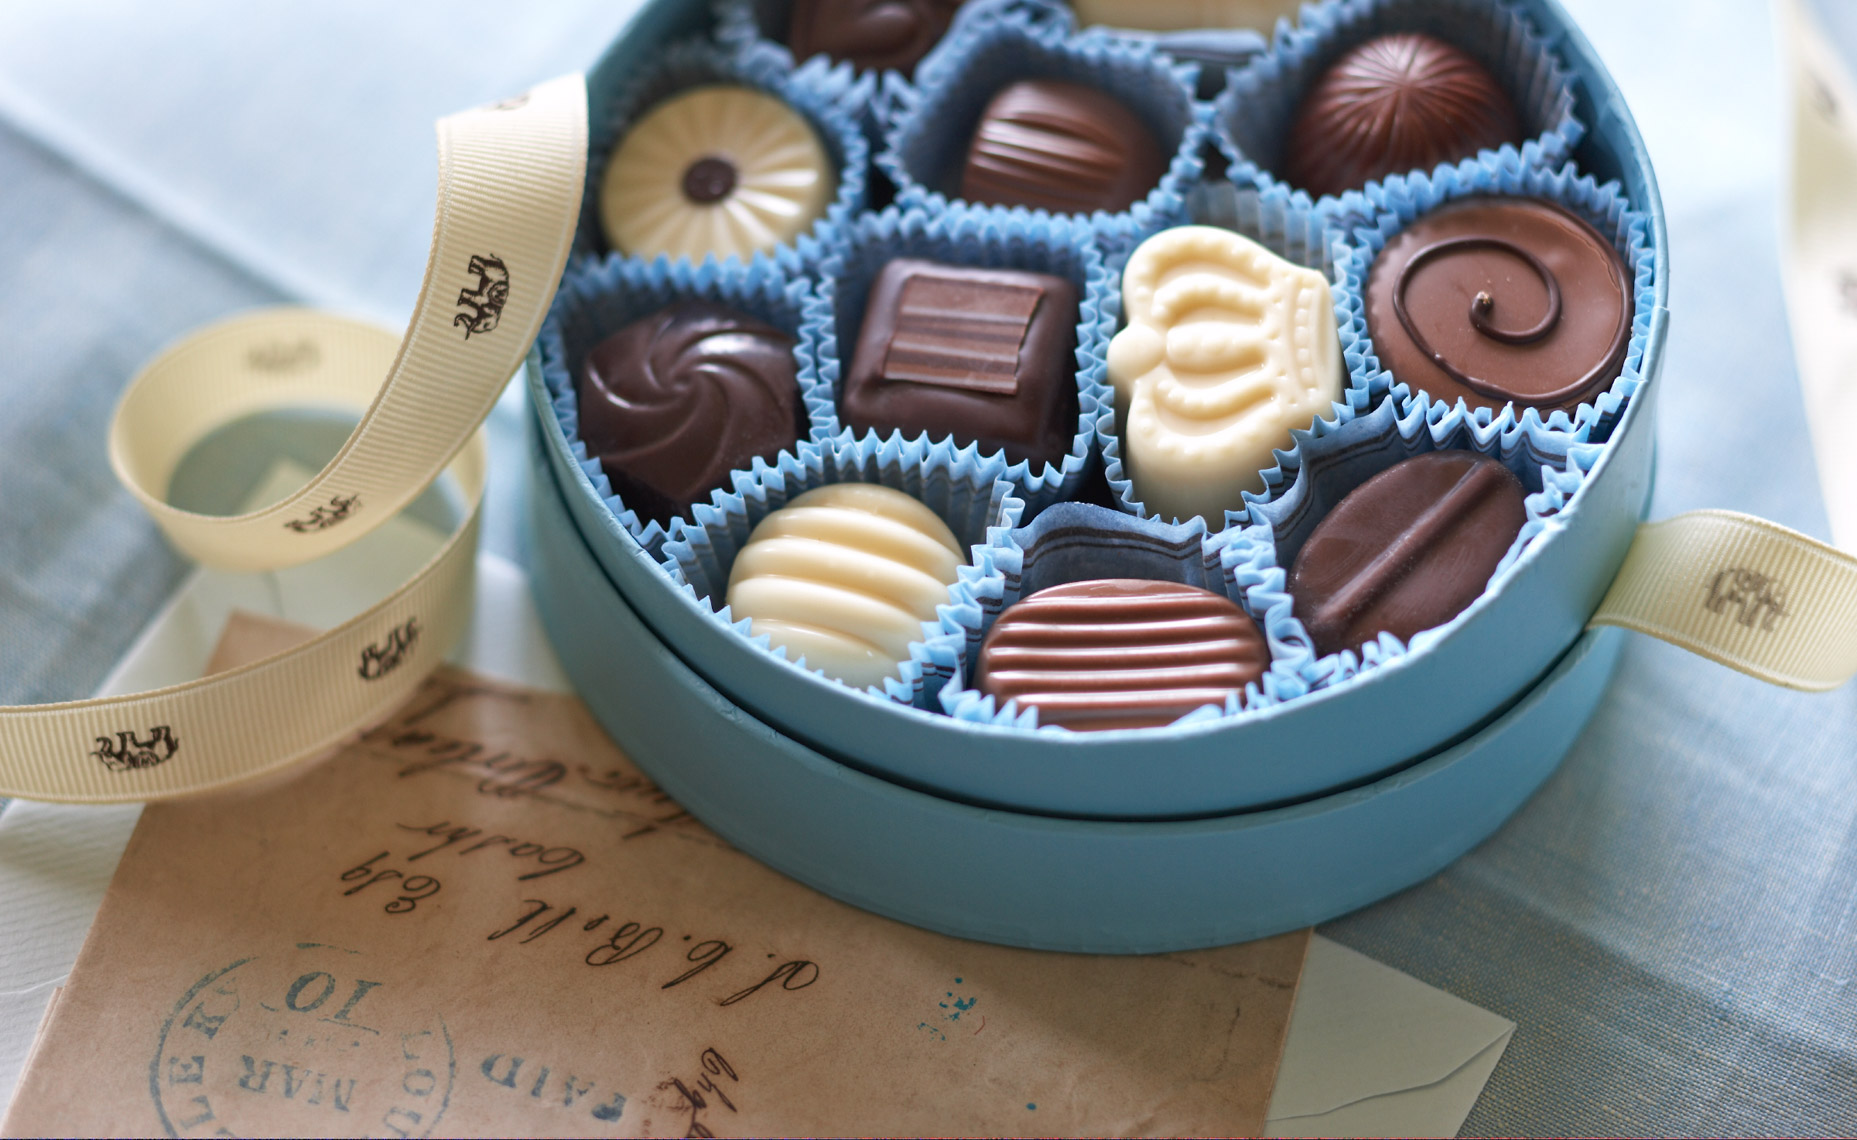 Chocolate in blue box hilip Harvey Photography, San Francisco, California, still life, interiors, food, lifestyle and product photography